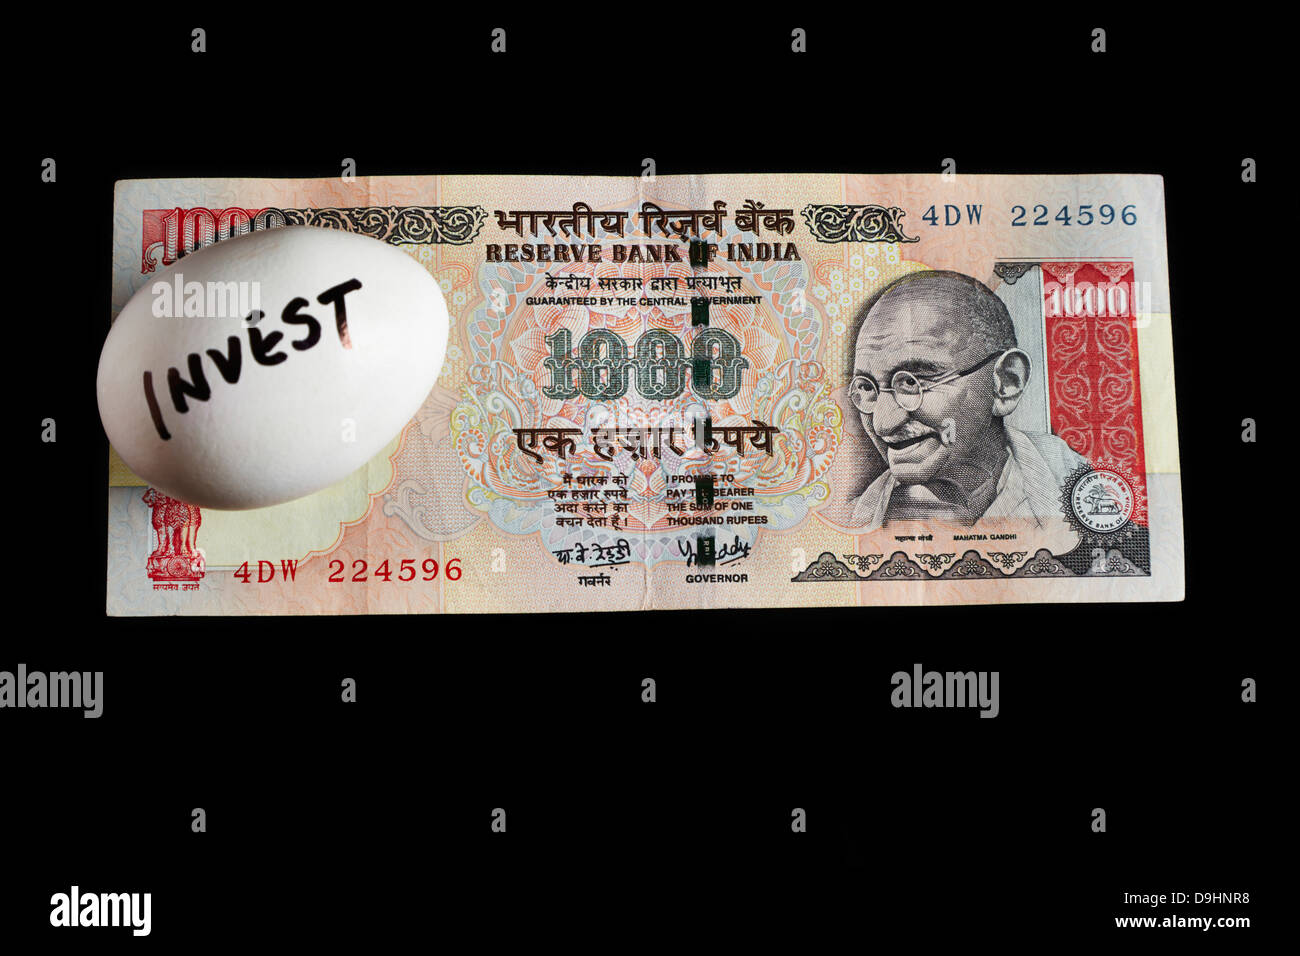 Two Thousand Rupees Stock Photos & Two Thousand Rupees Stock